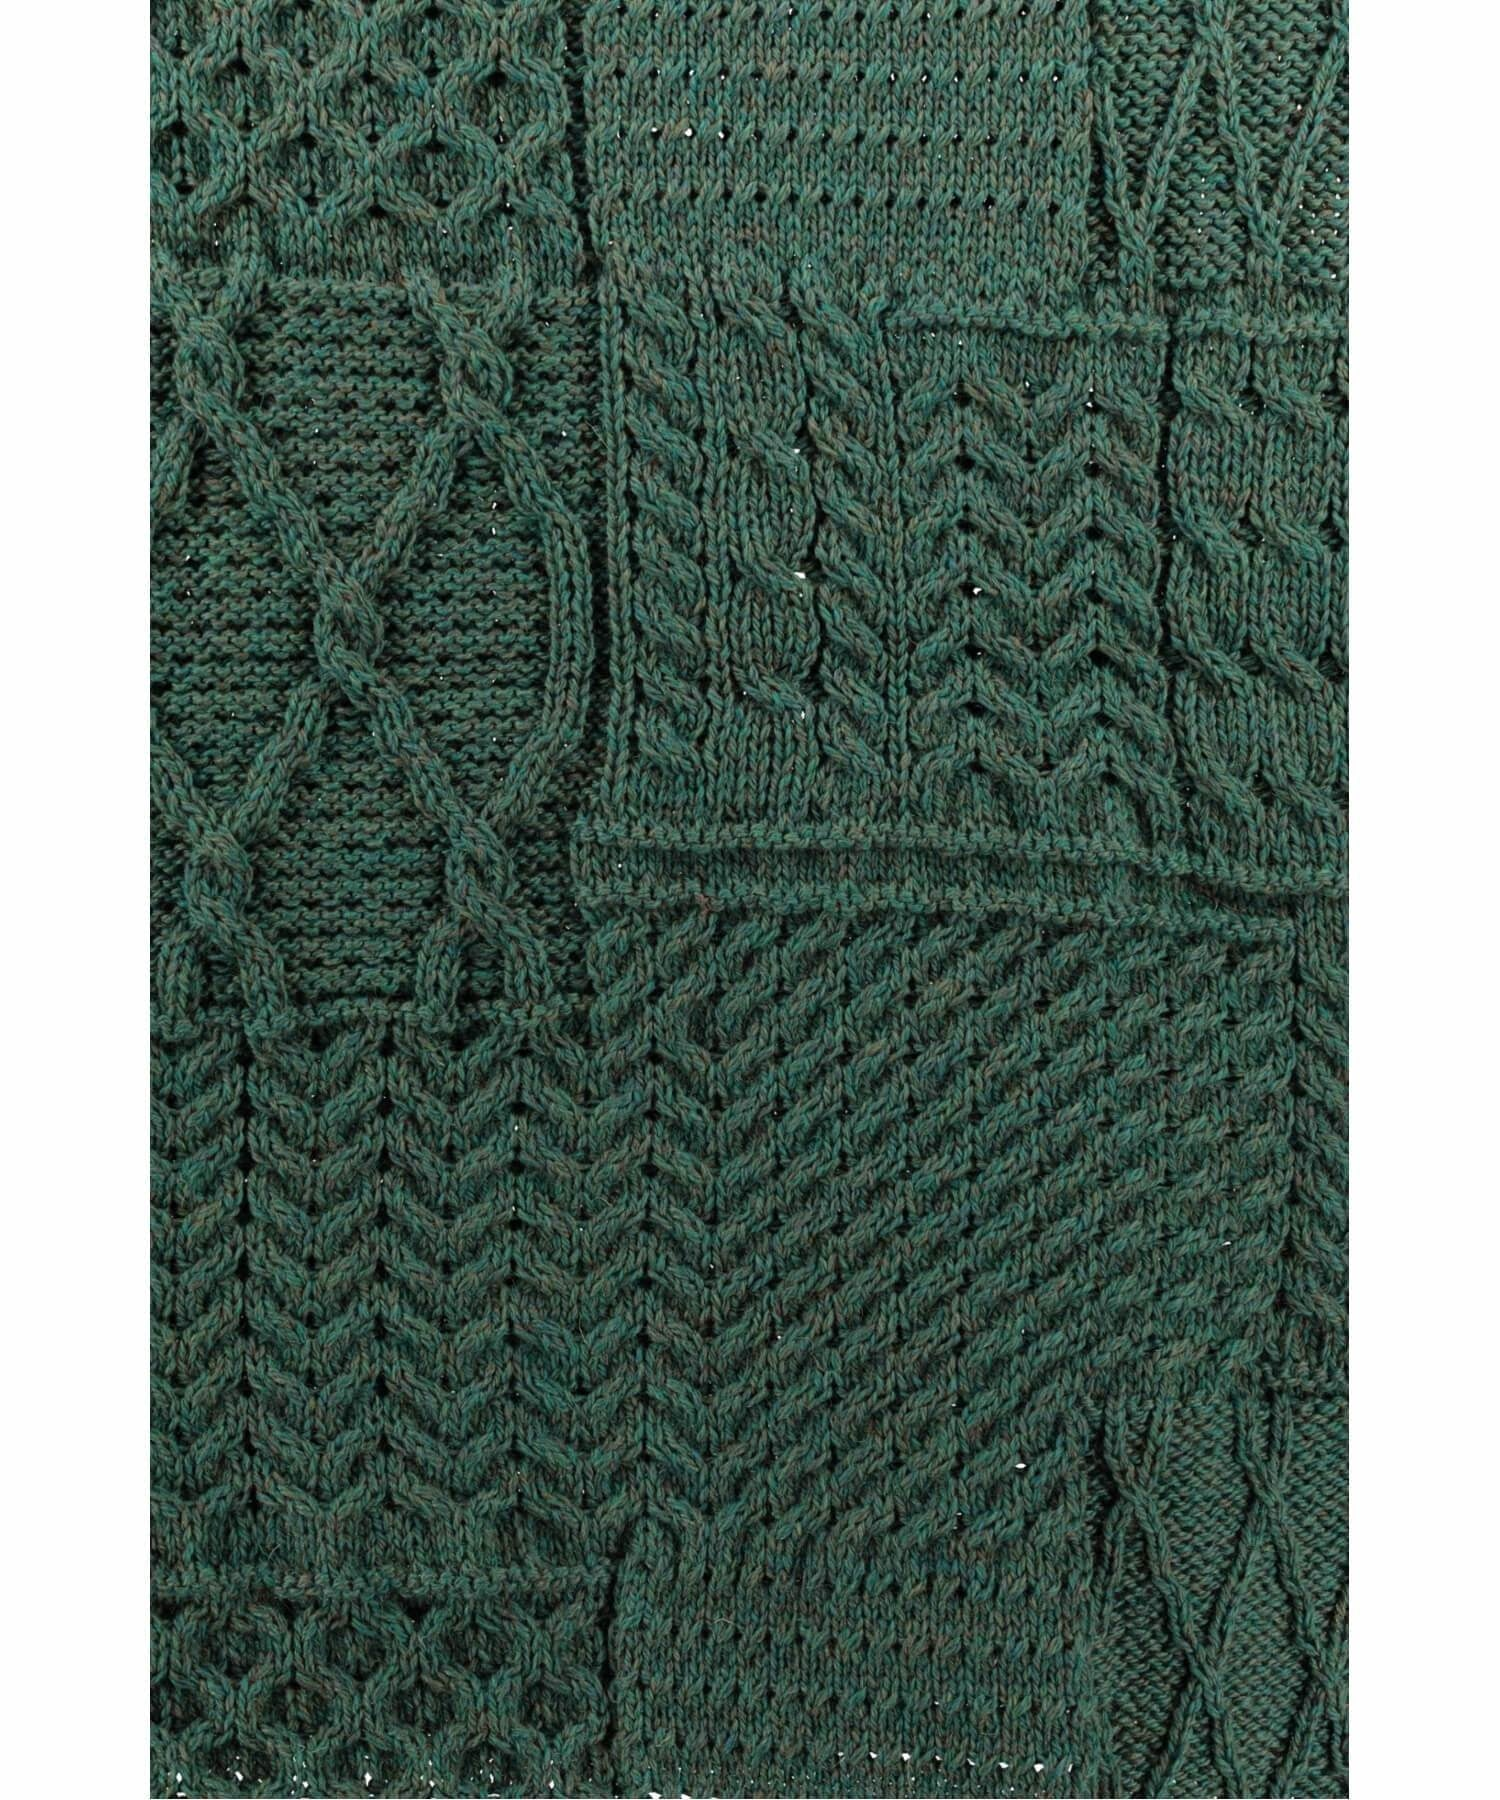 Plaited Aran Merino Throw - Connemara Green - [Aran Woollen Mills] - Throws & Cushions - Irish Gifts